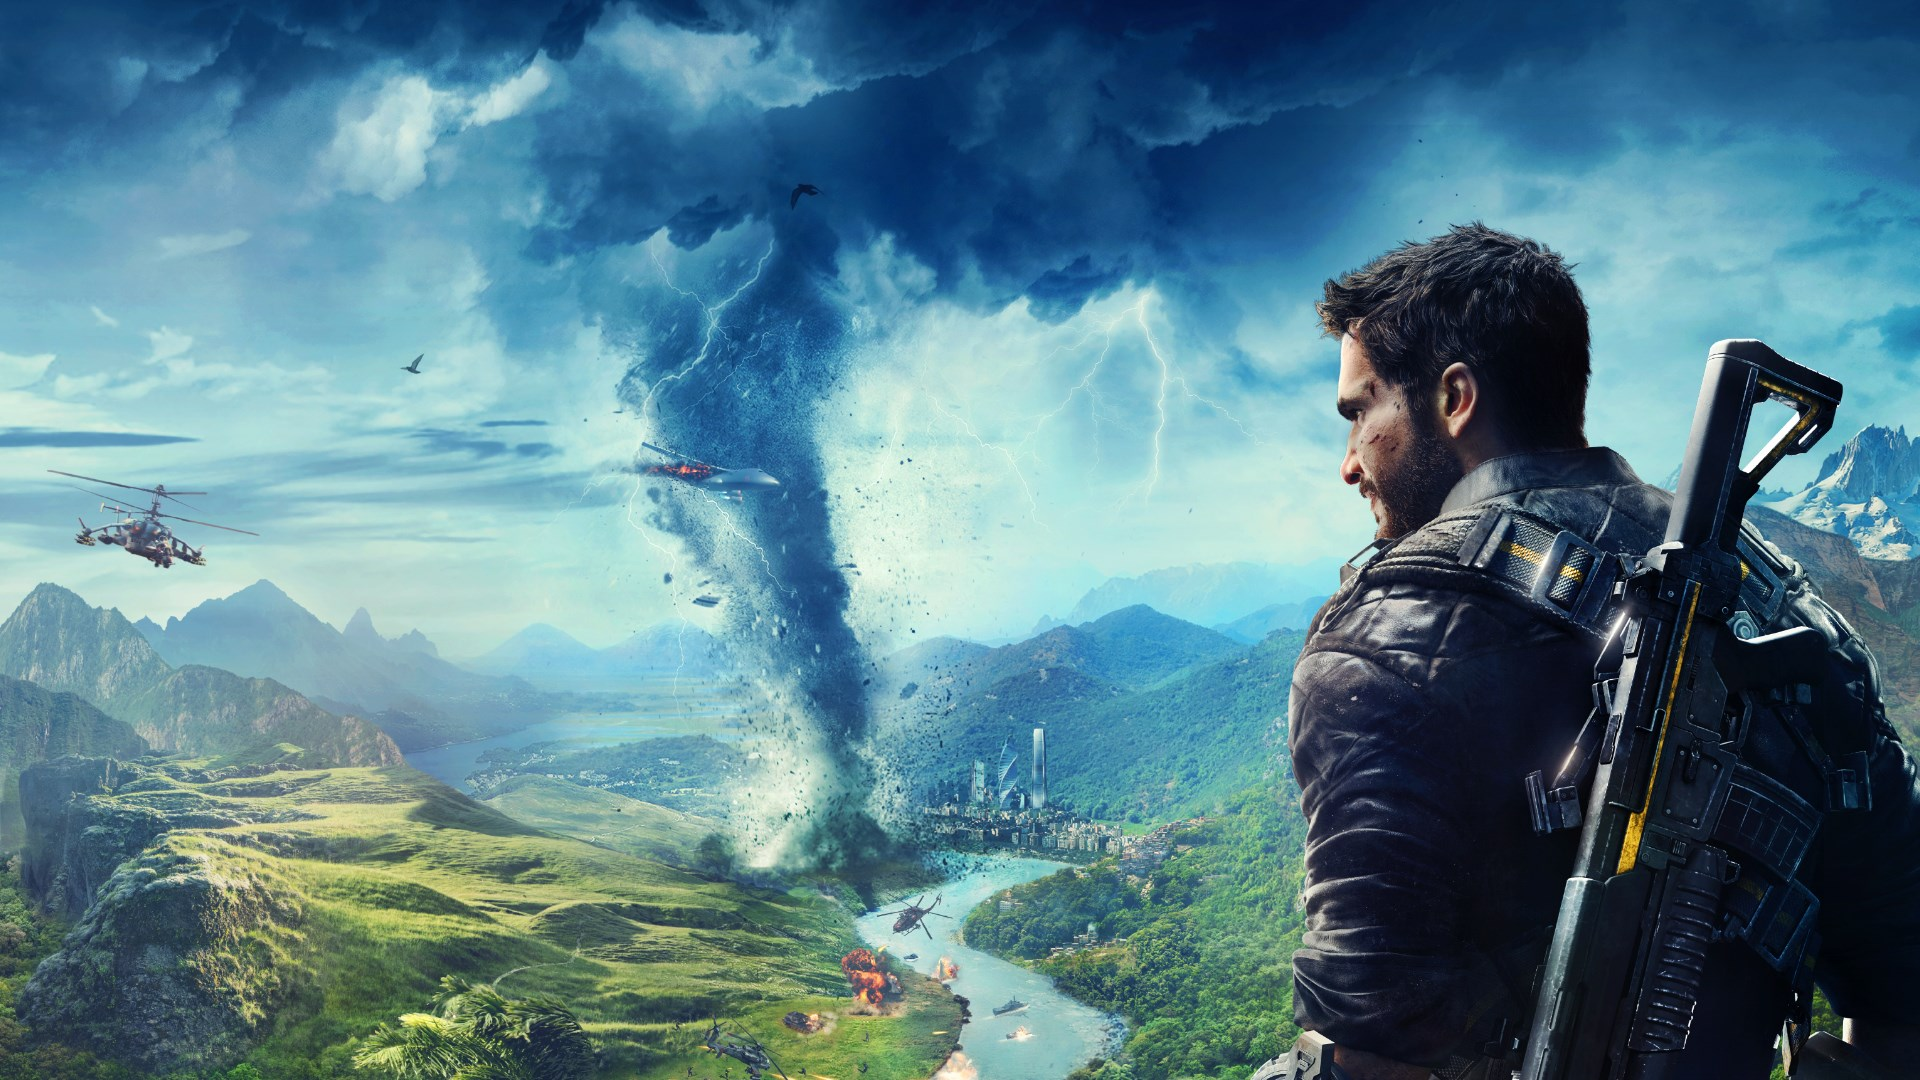 Buy Just Cause 4: Reloaded - Microsoft Store